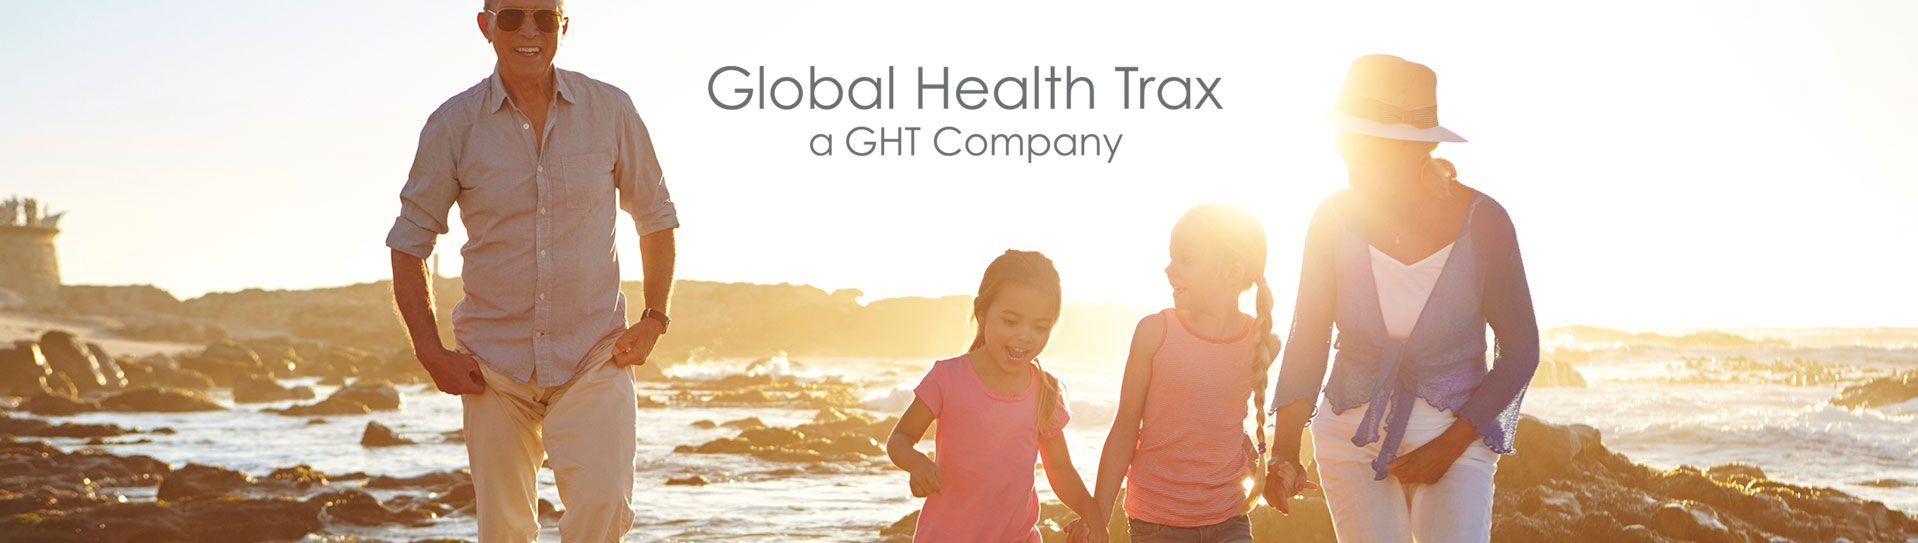 Global Health Trax a GHT company